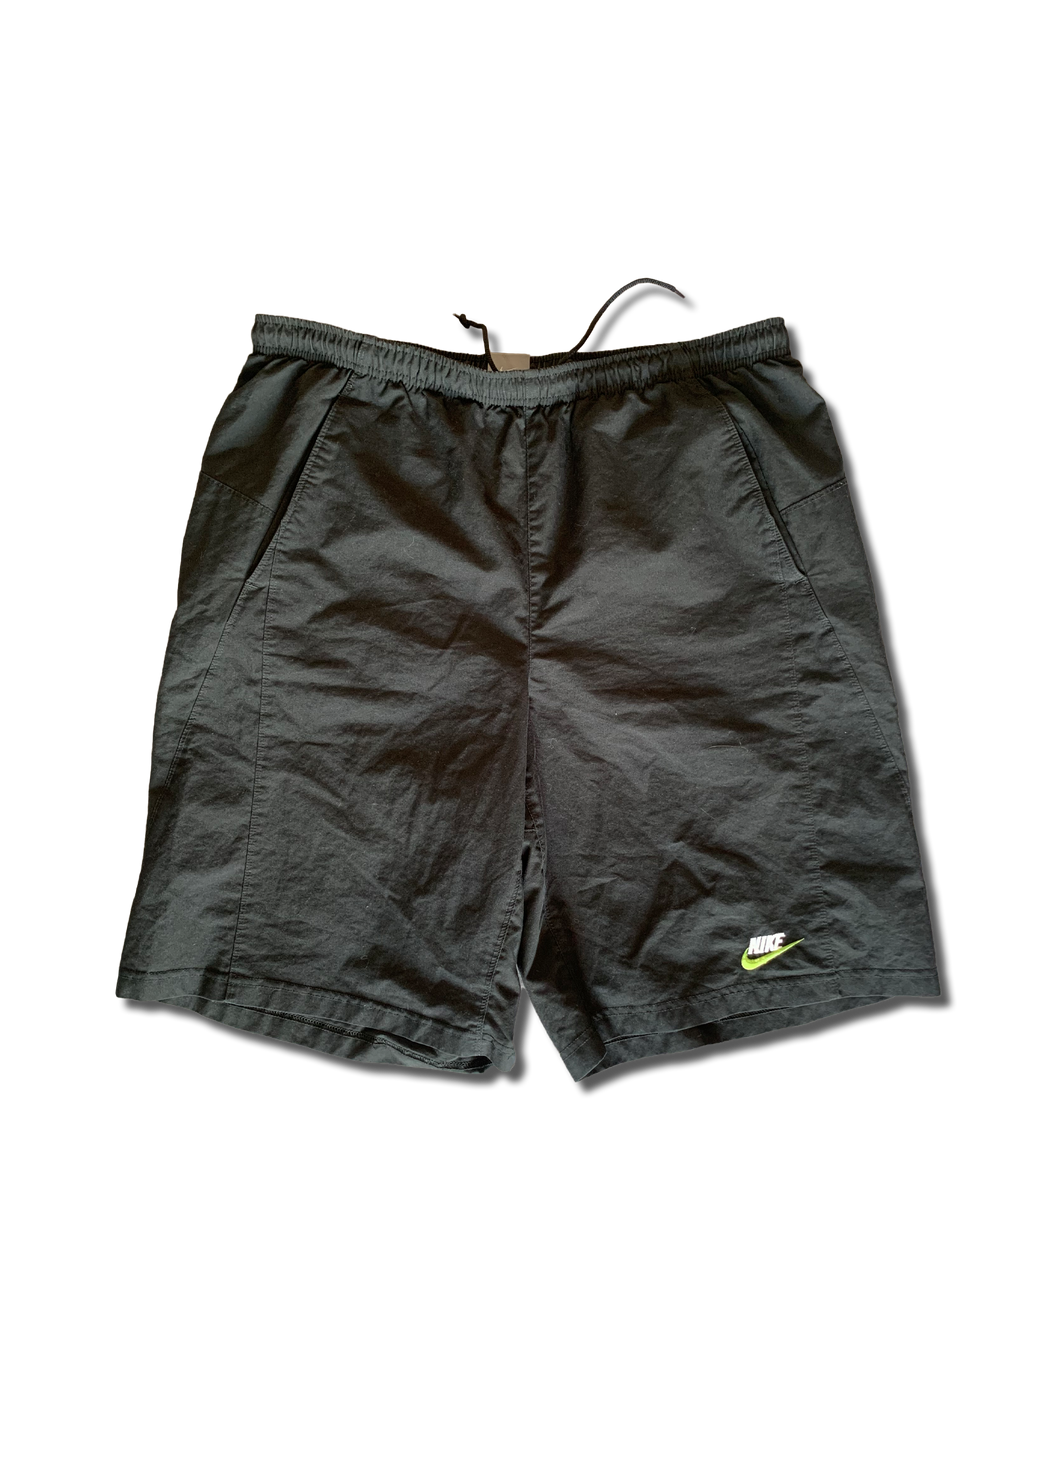 Nike Green Logo Shorts